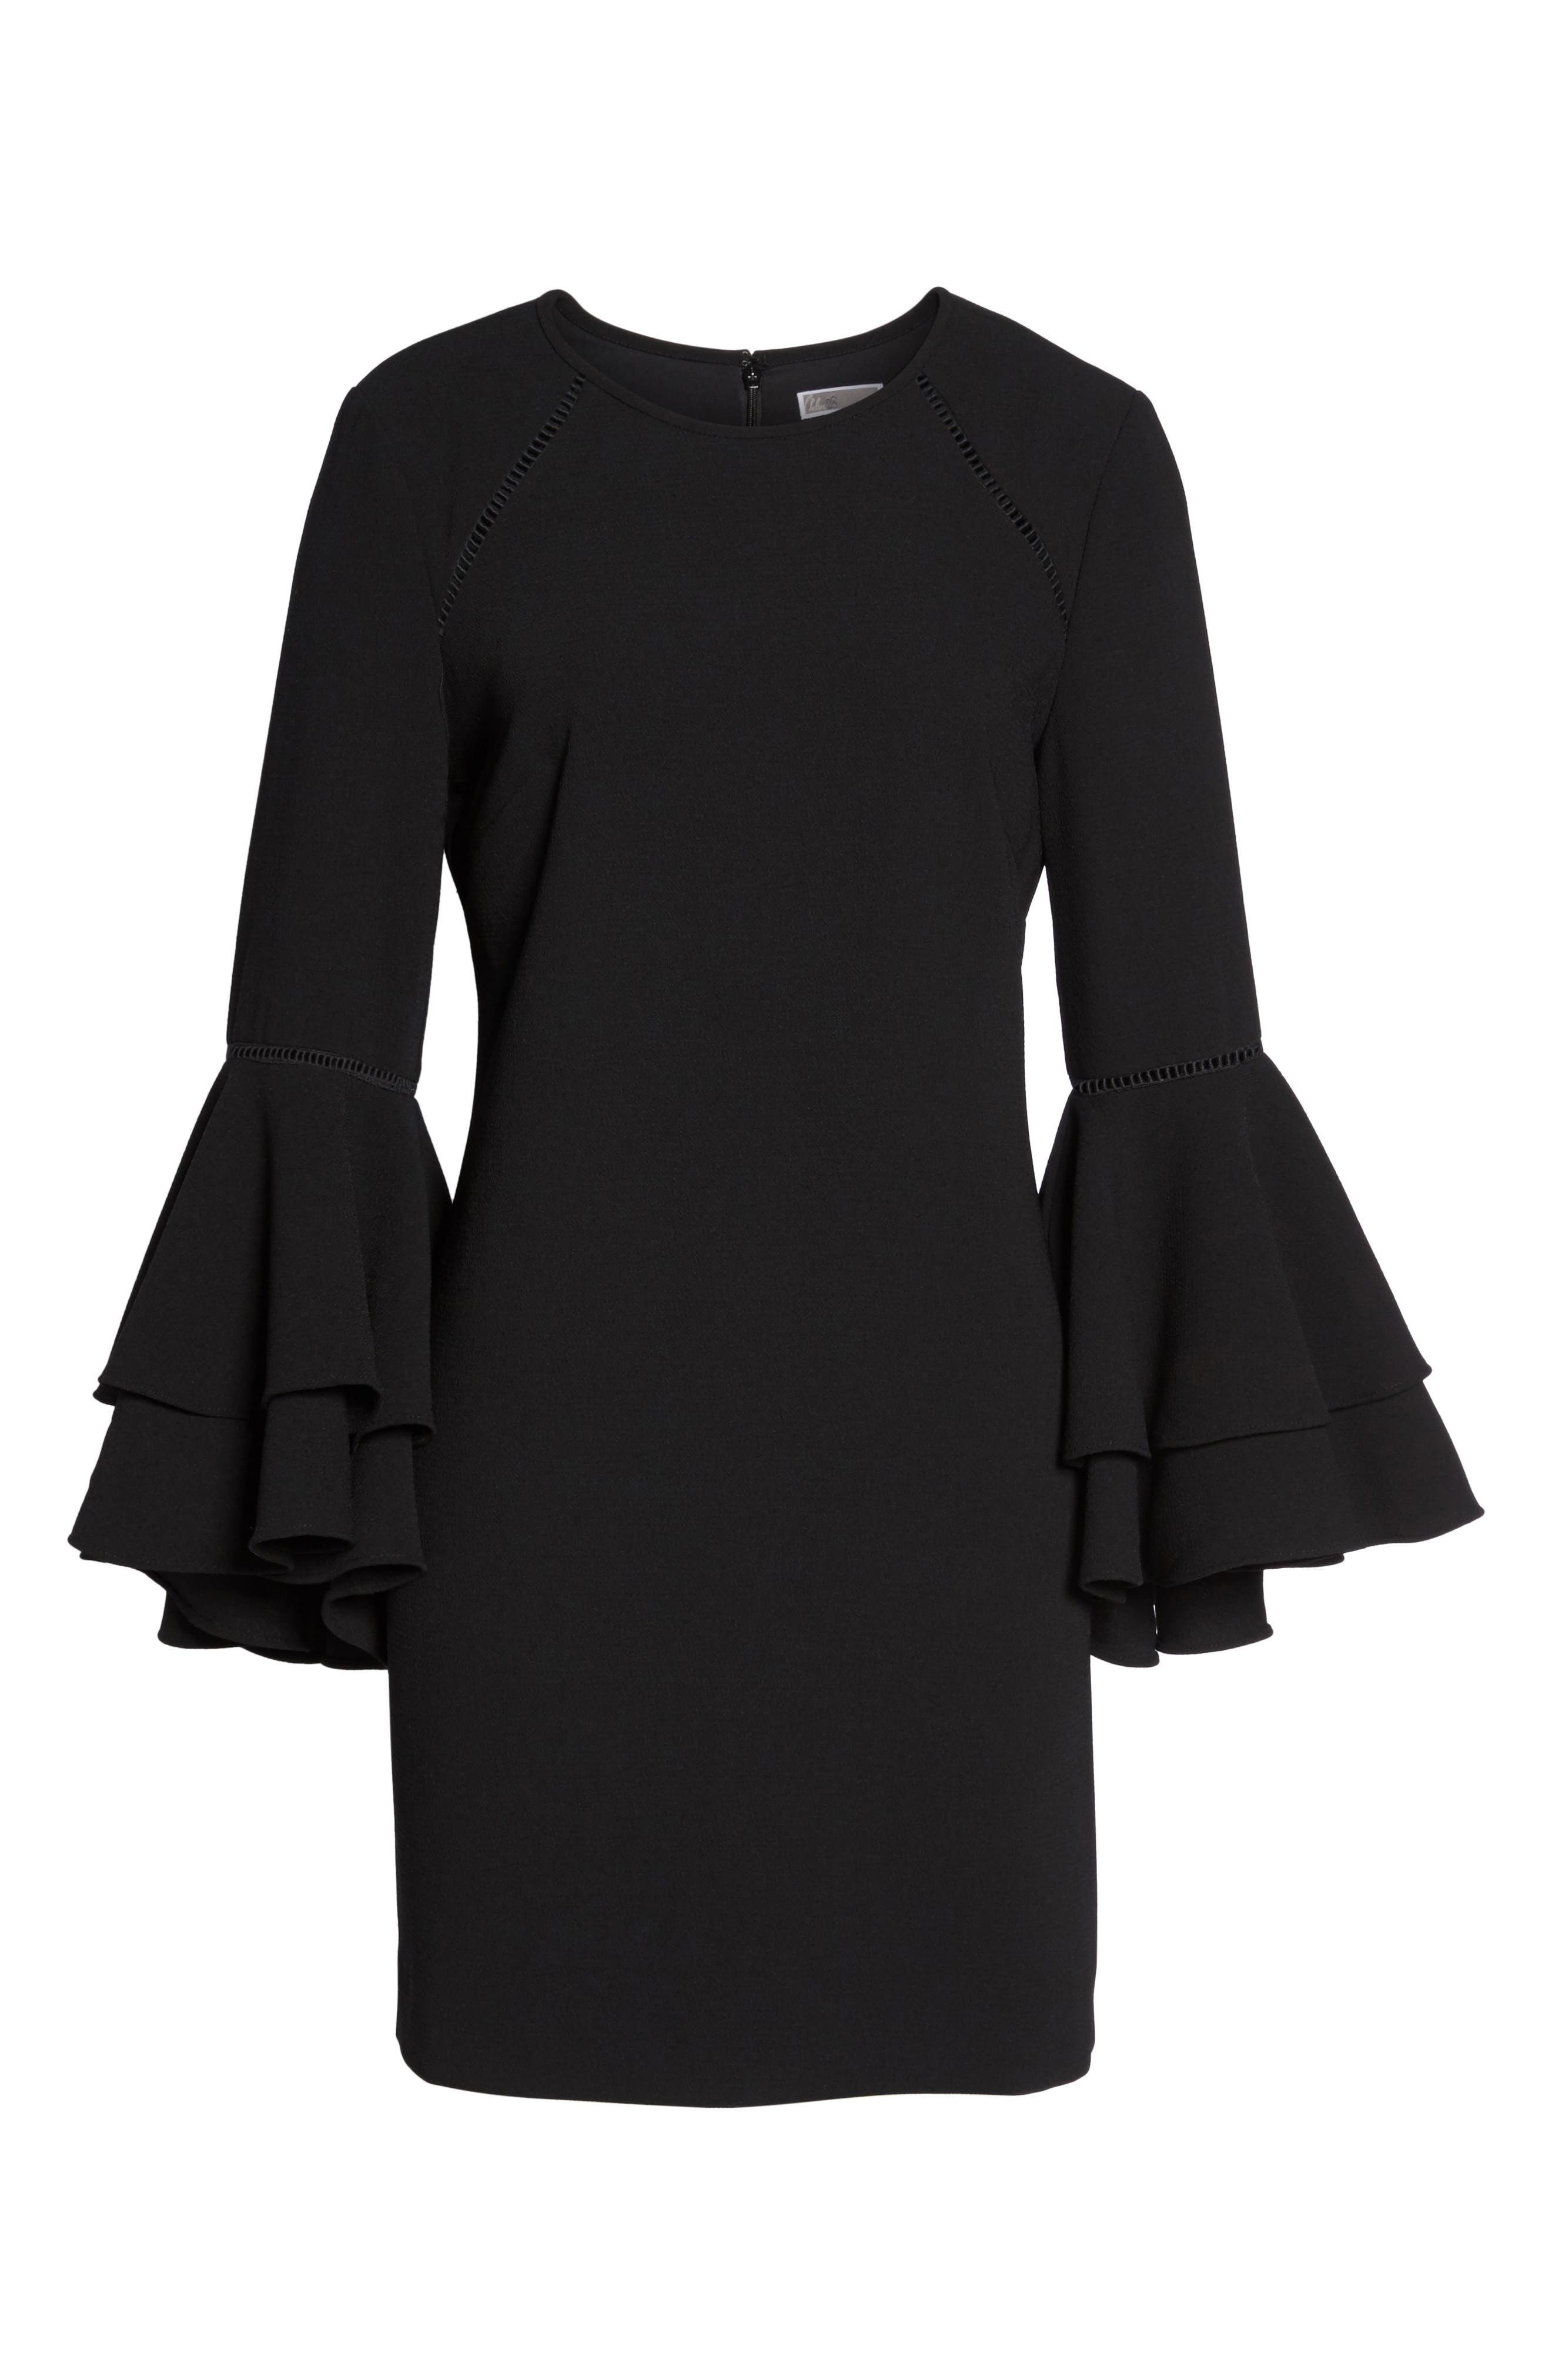 Tiered Bell Sleeve Shift Dress,                             Alternate thumbnail 6, color,                             001